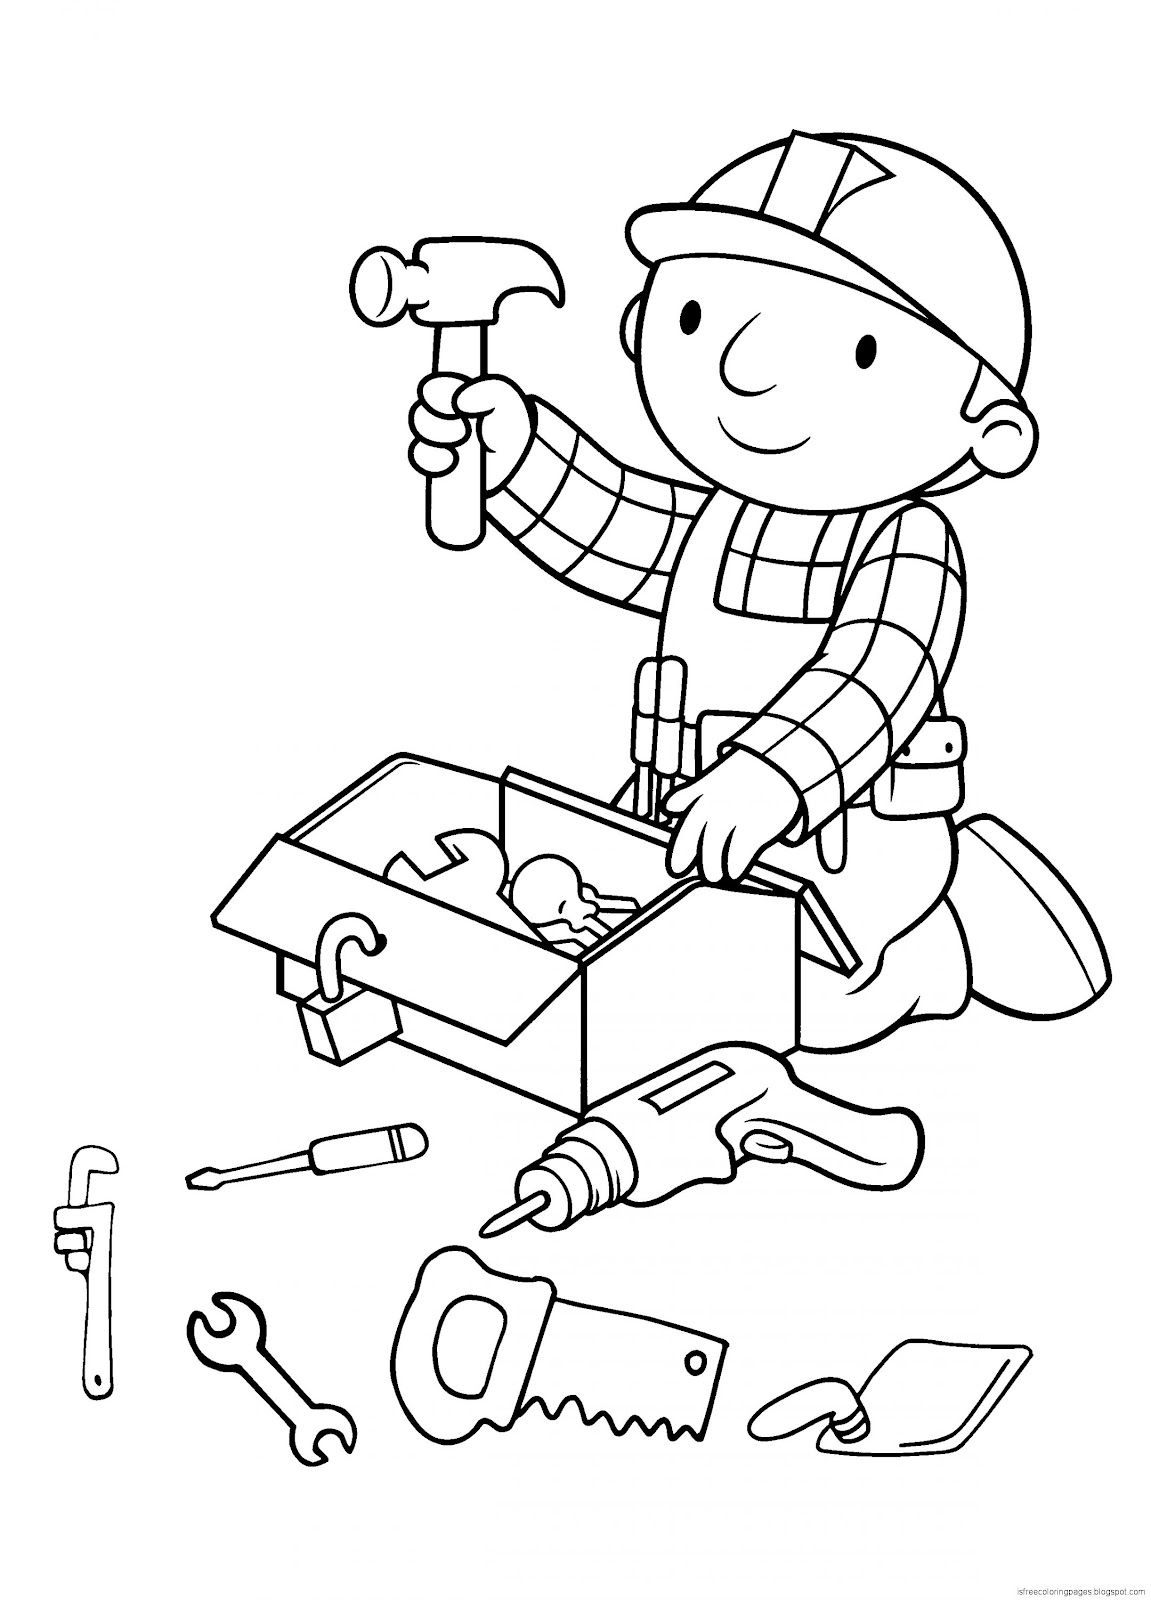 Bob The Builder Coloring Pages | Free Coloring Pages